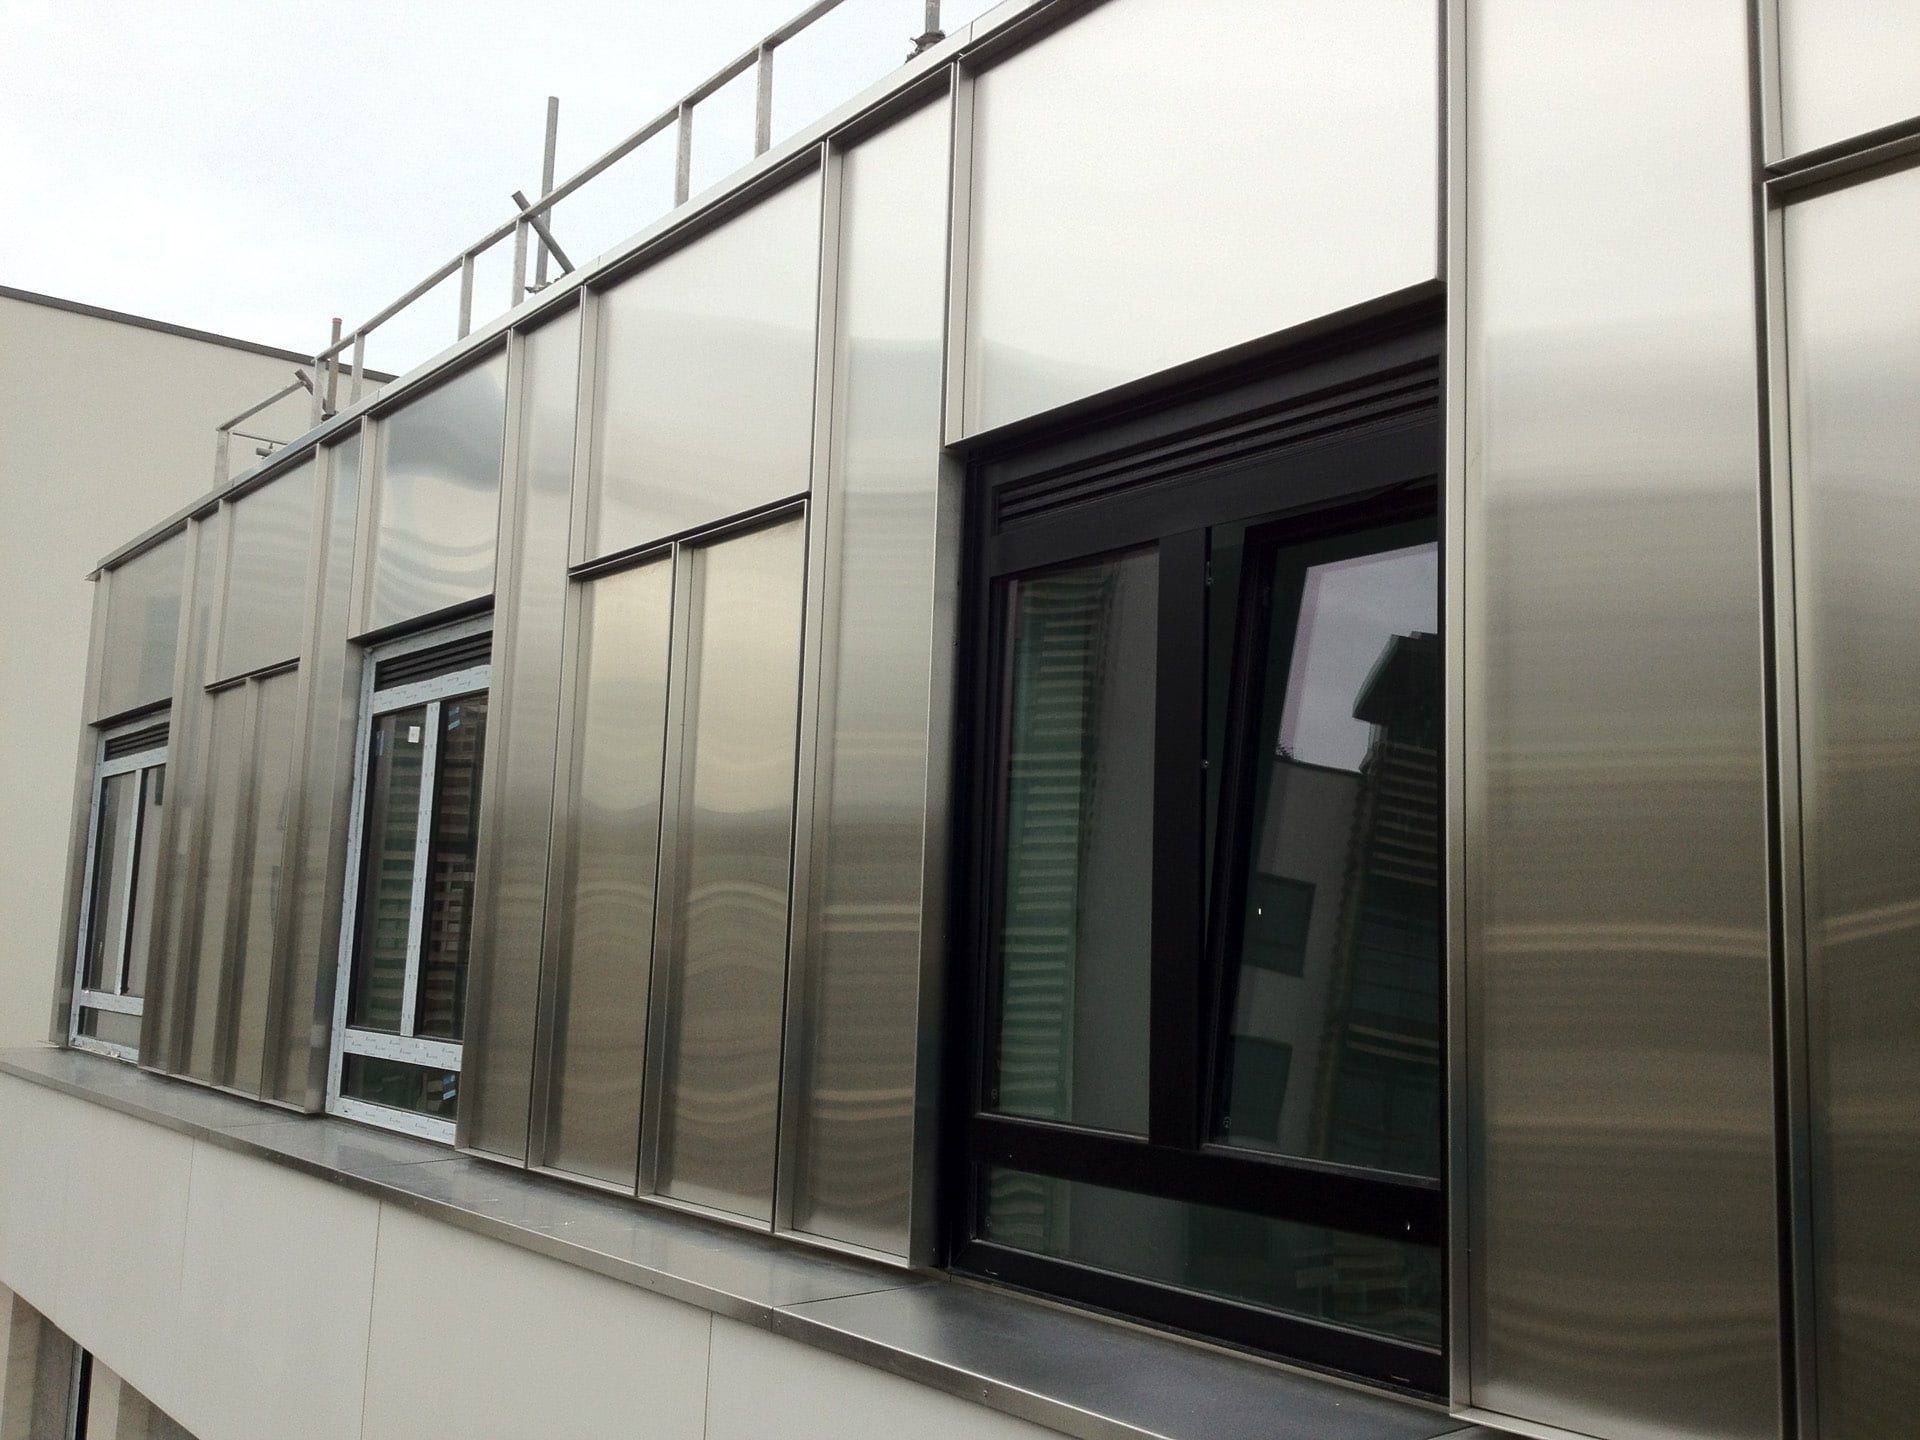 Rigidized stainless steel rainscreen cladding | Athletes Village